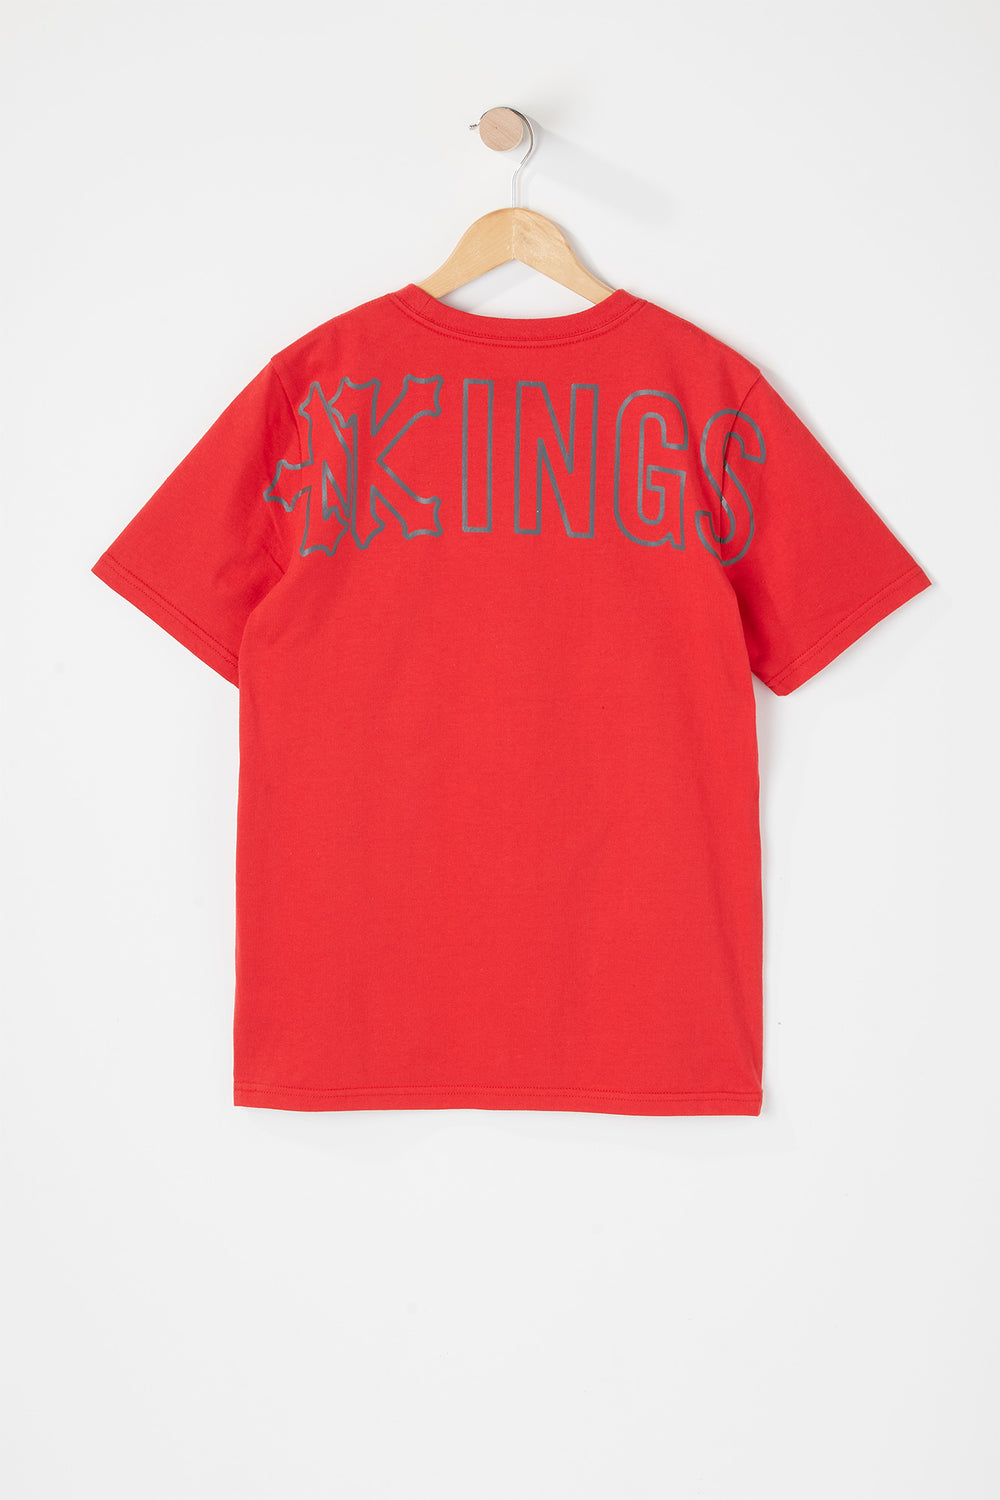 Zoo York Youth Kings T-Shirt Red